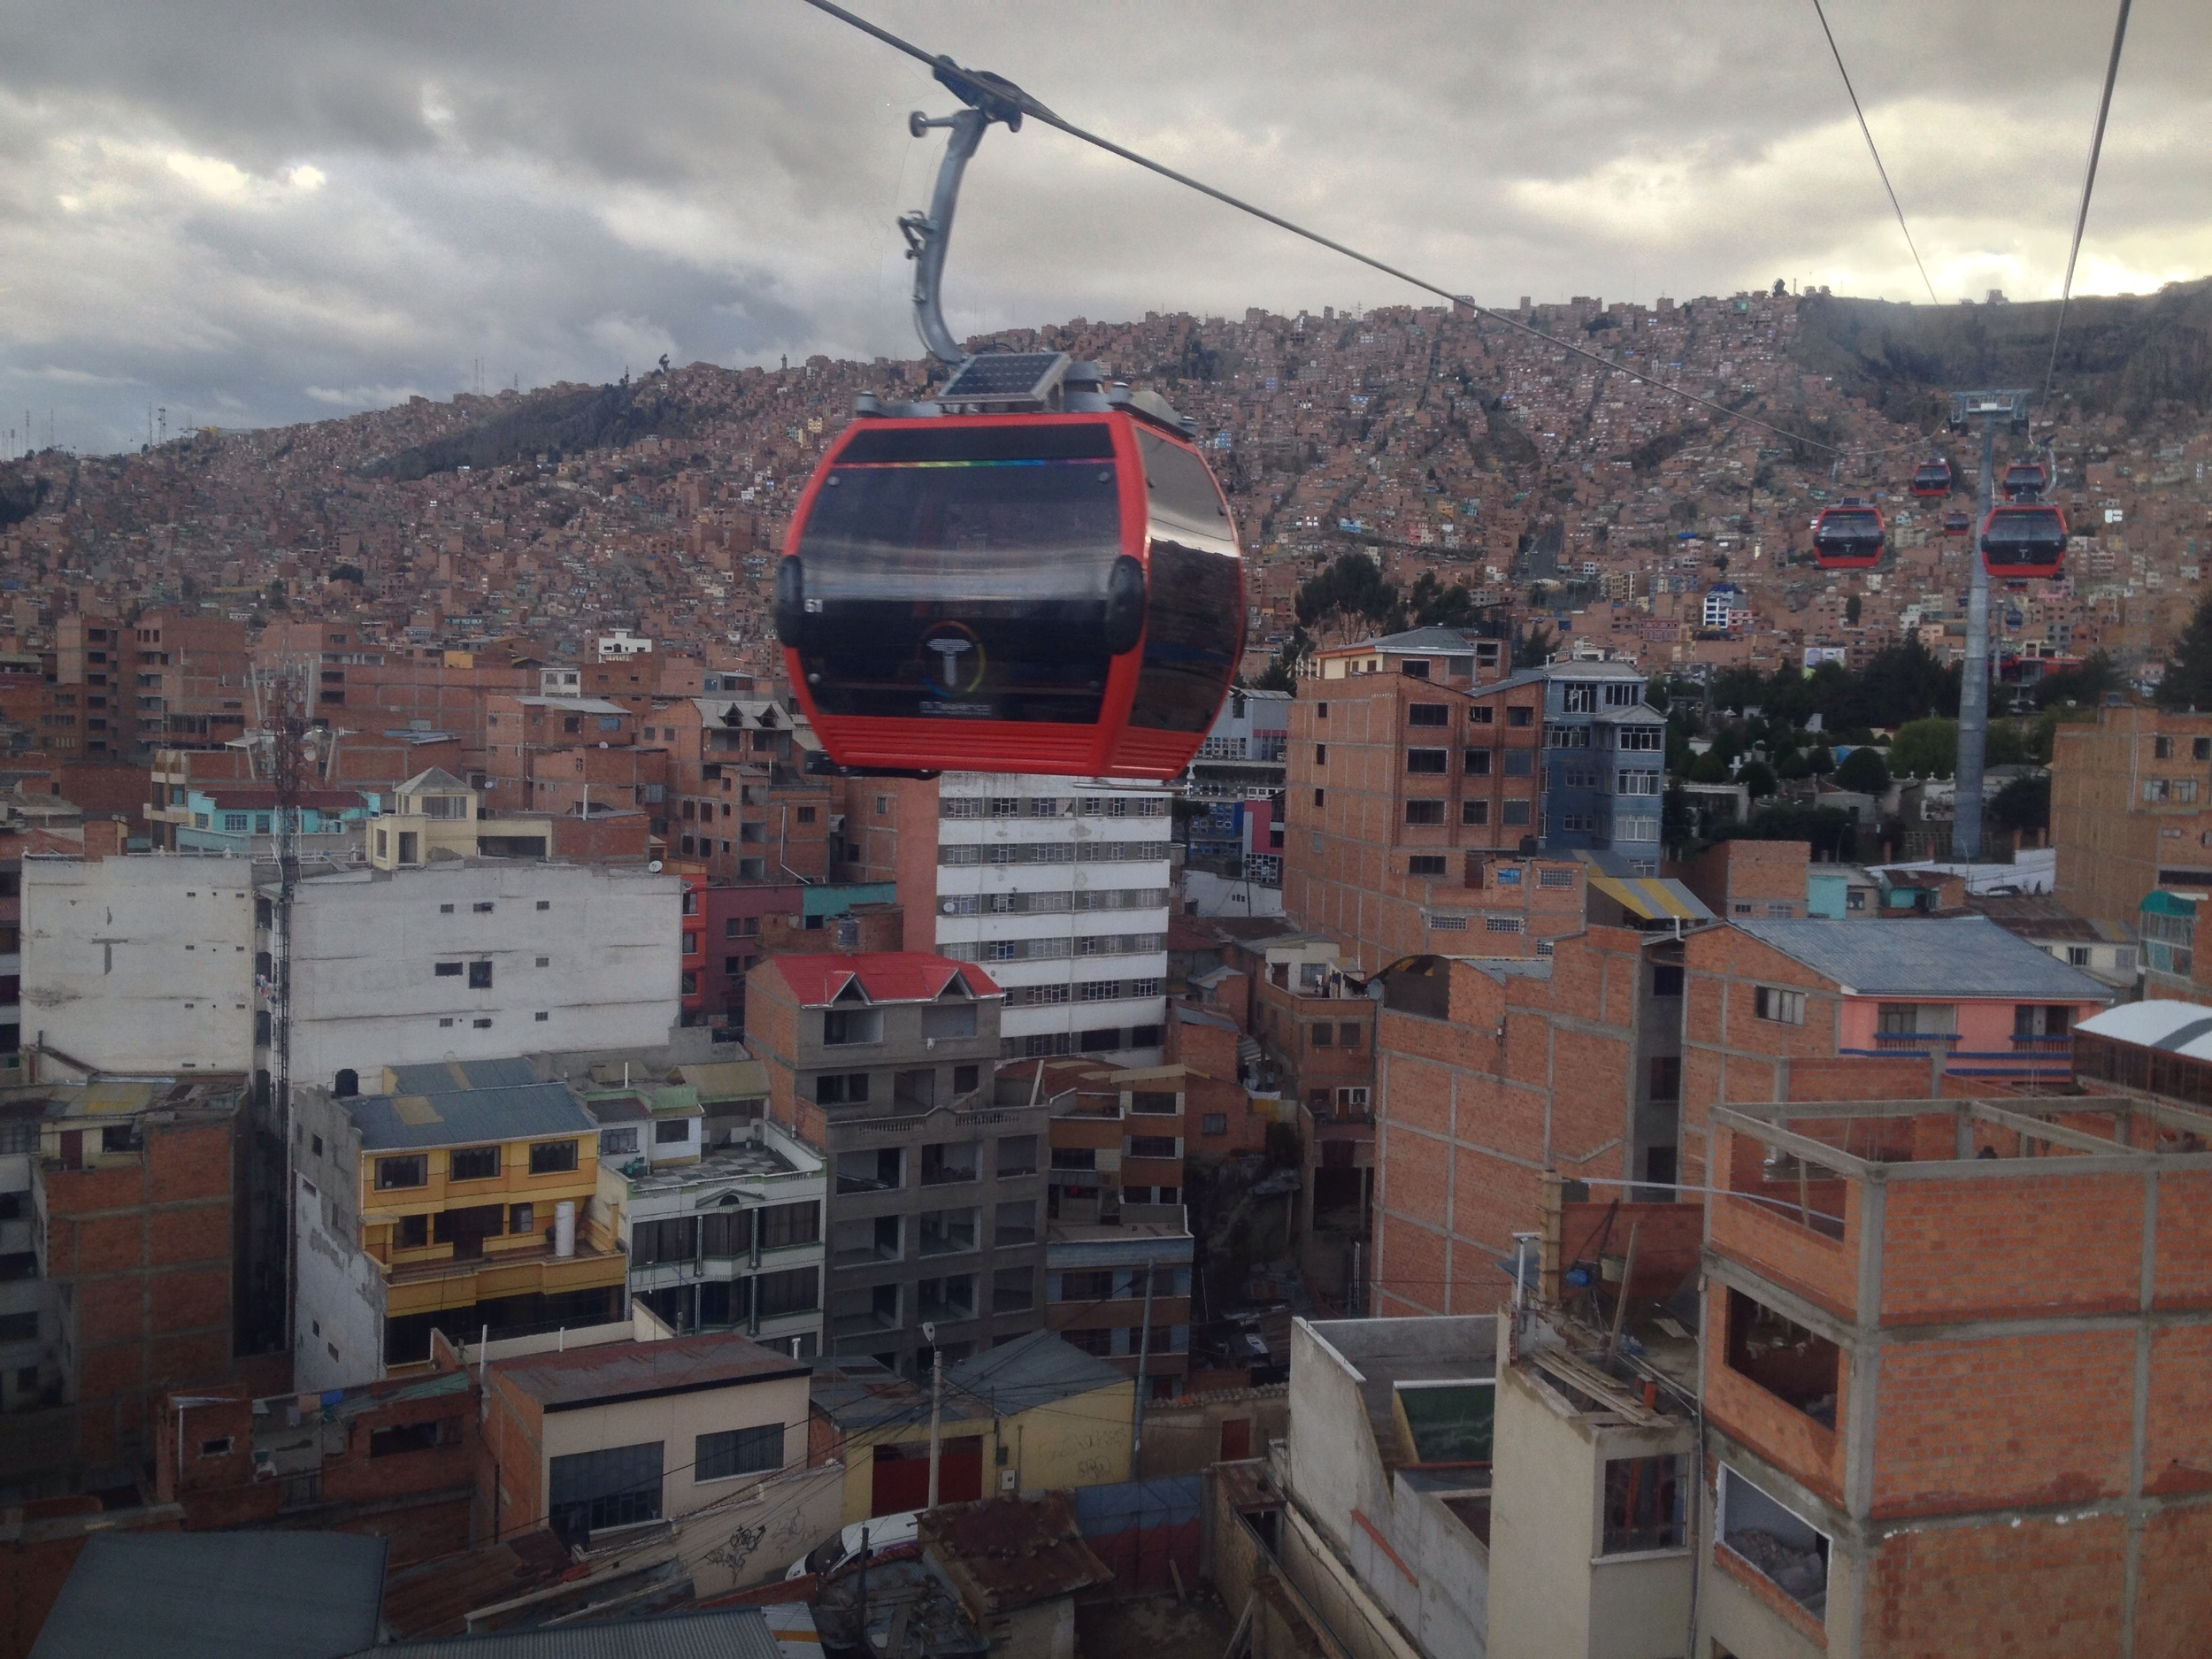 The new cable car beats the bus